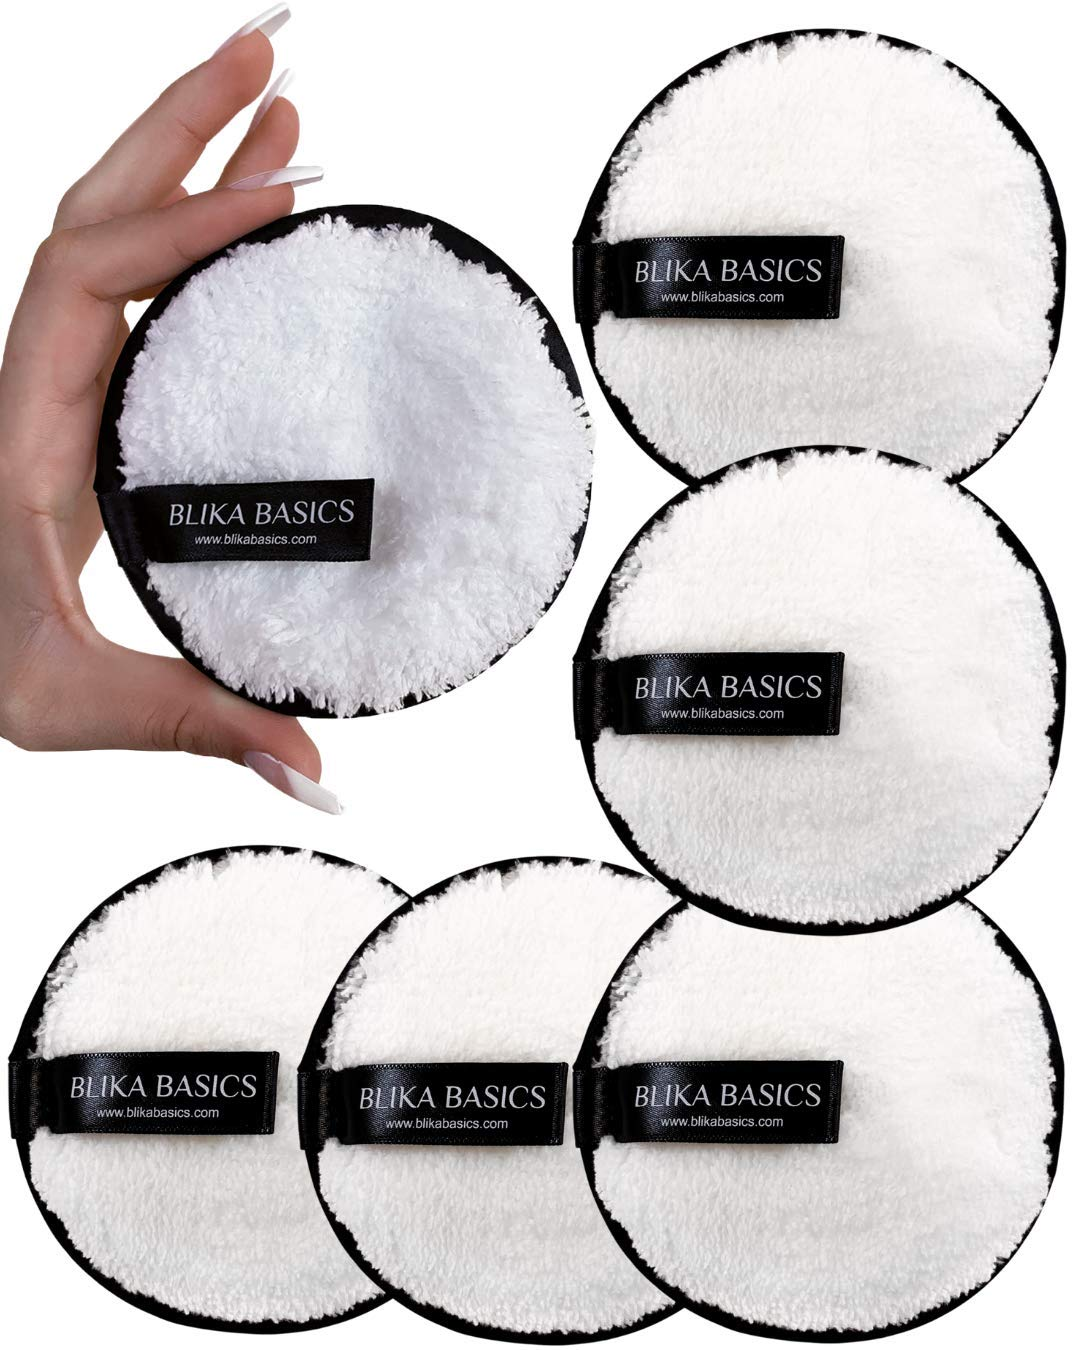 Reusable Makeup Remover Pads - 5 pack White Microfiber Face Rounds to Remove Mascara Foundation Lipstick and Eye Shadow - Washable Round Beauty Cloths - SAVE MONEY with these reusable Eco-friendly wipes